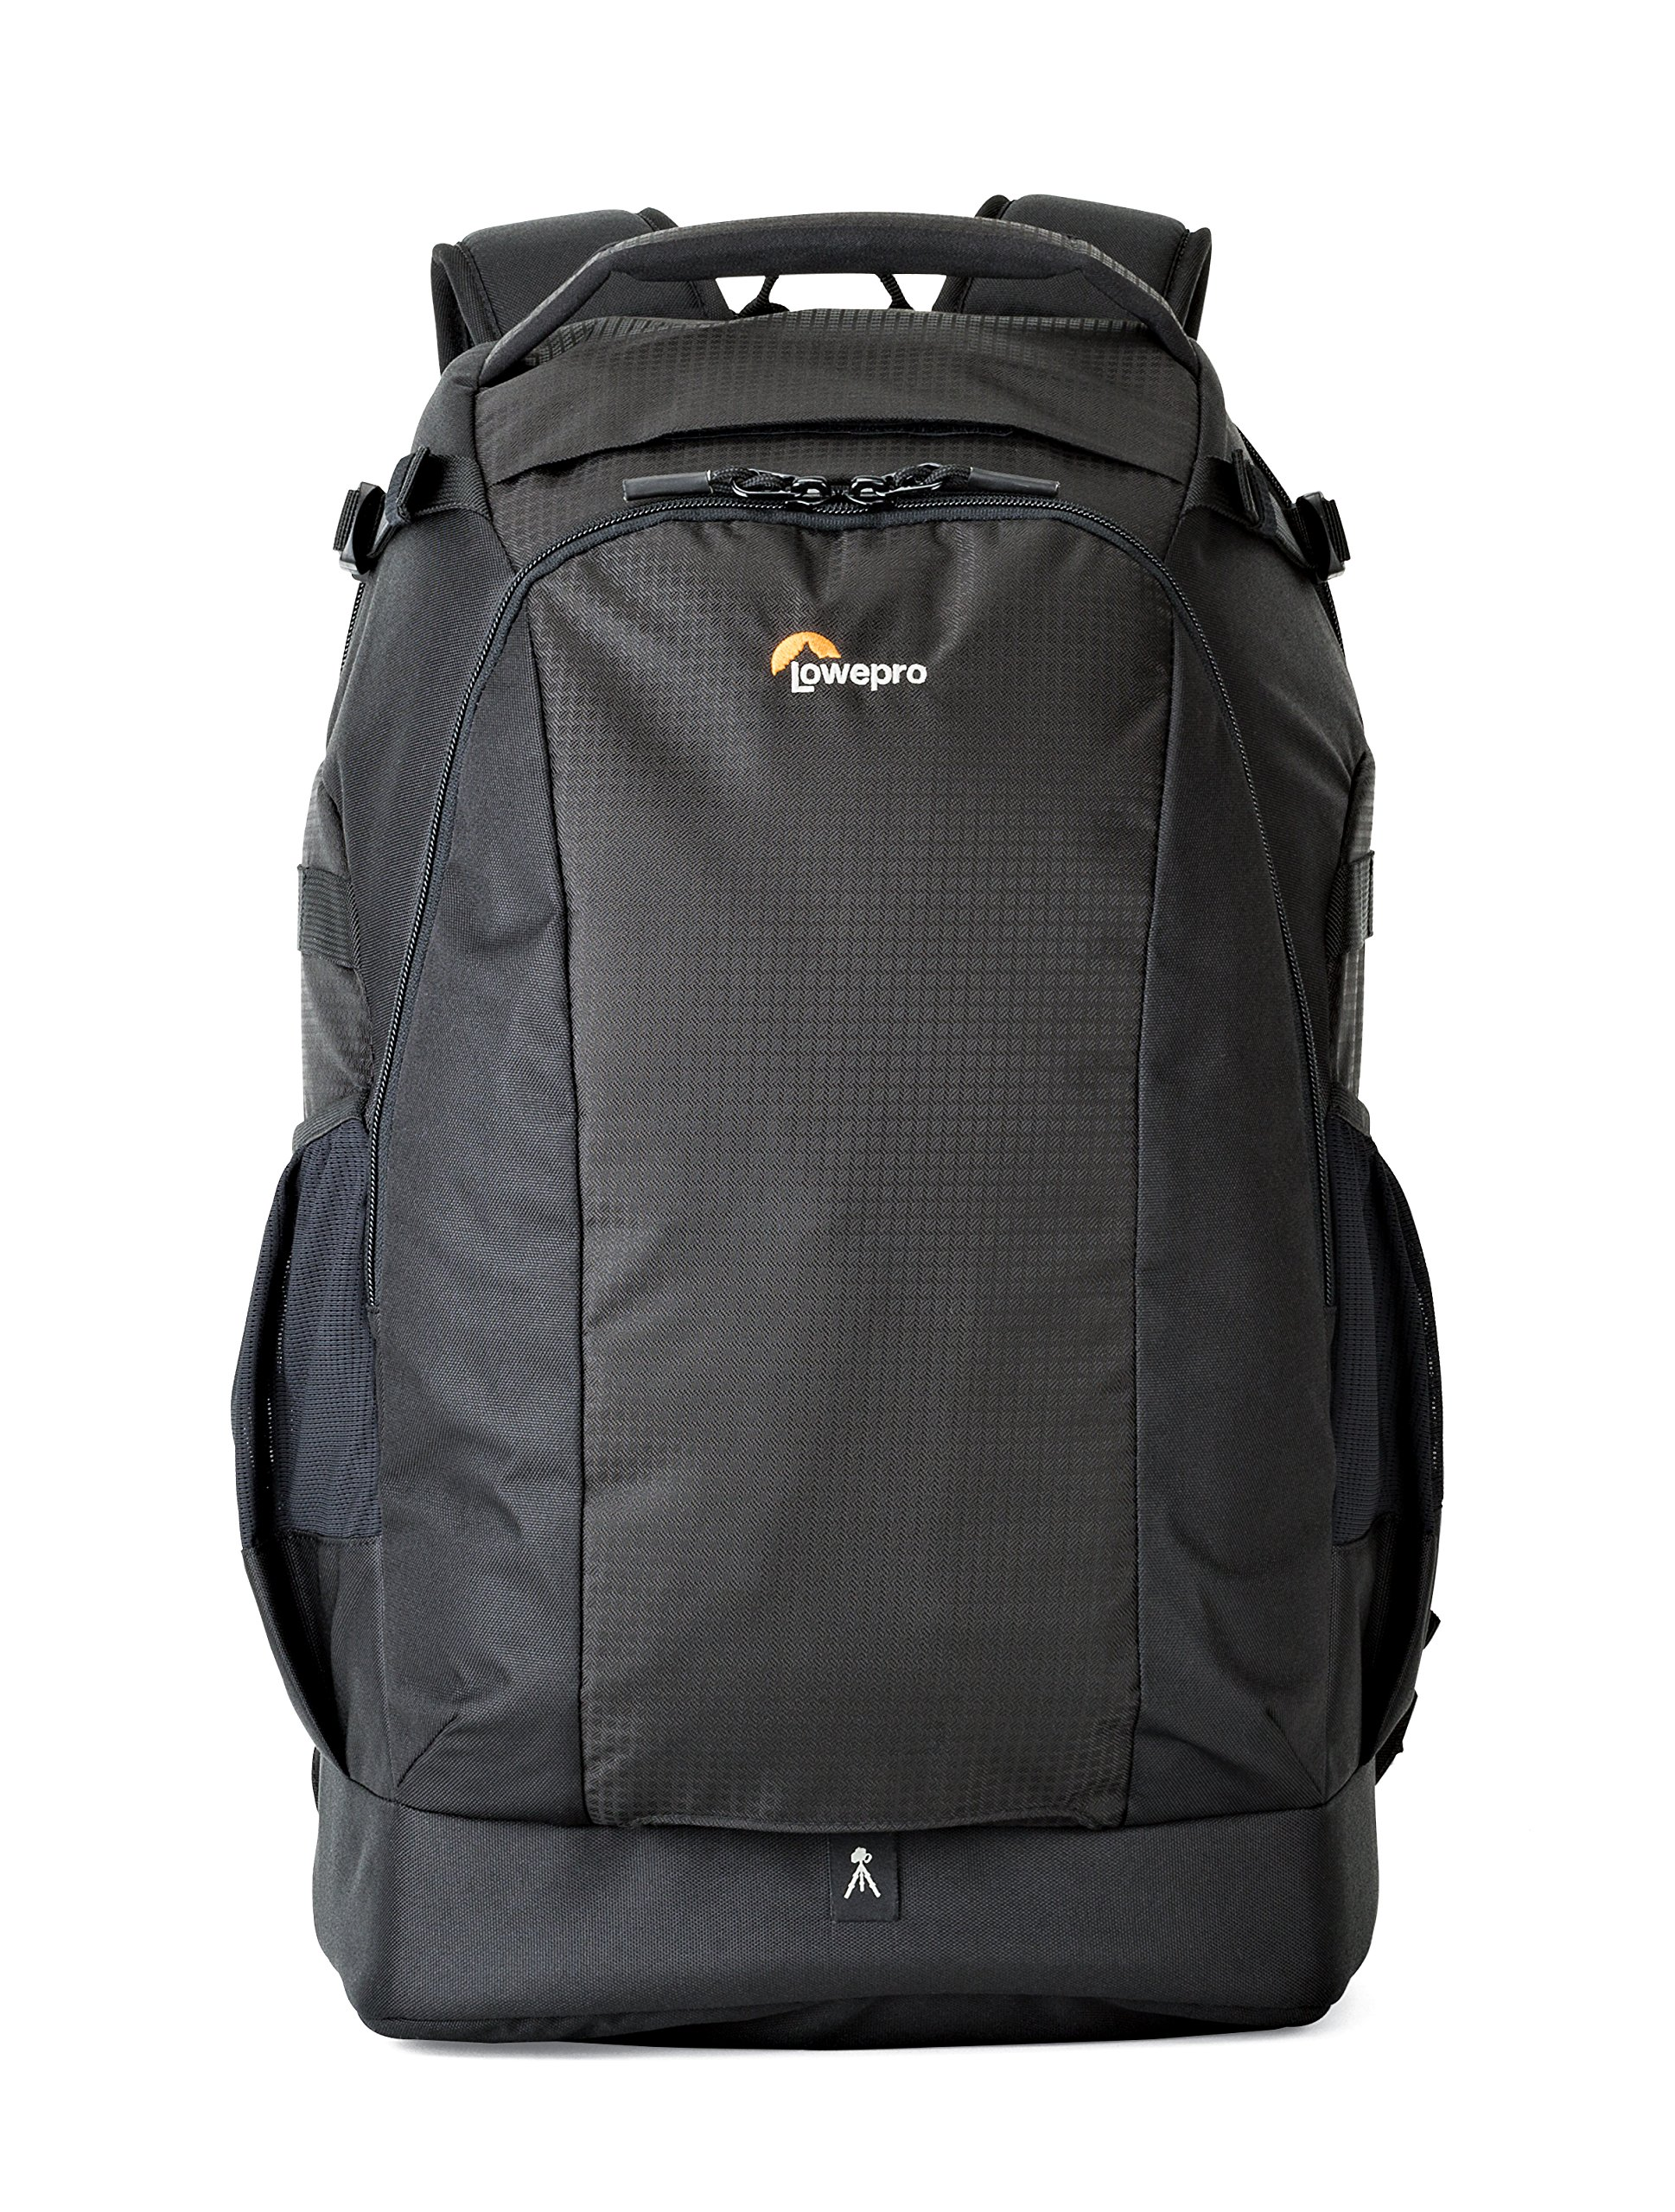 Lowepro Flipside 500 AW II Camera Bag. Lowepro Camera Backpack for Professional DSLR Cameras and Multiple Lenses.